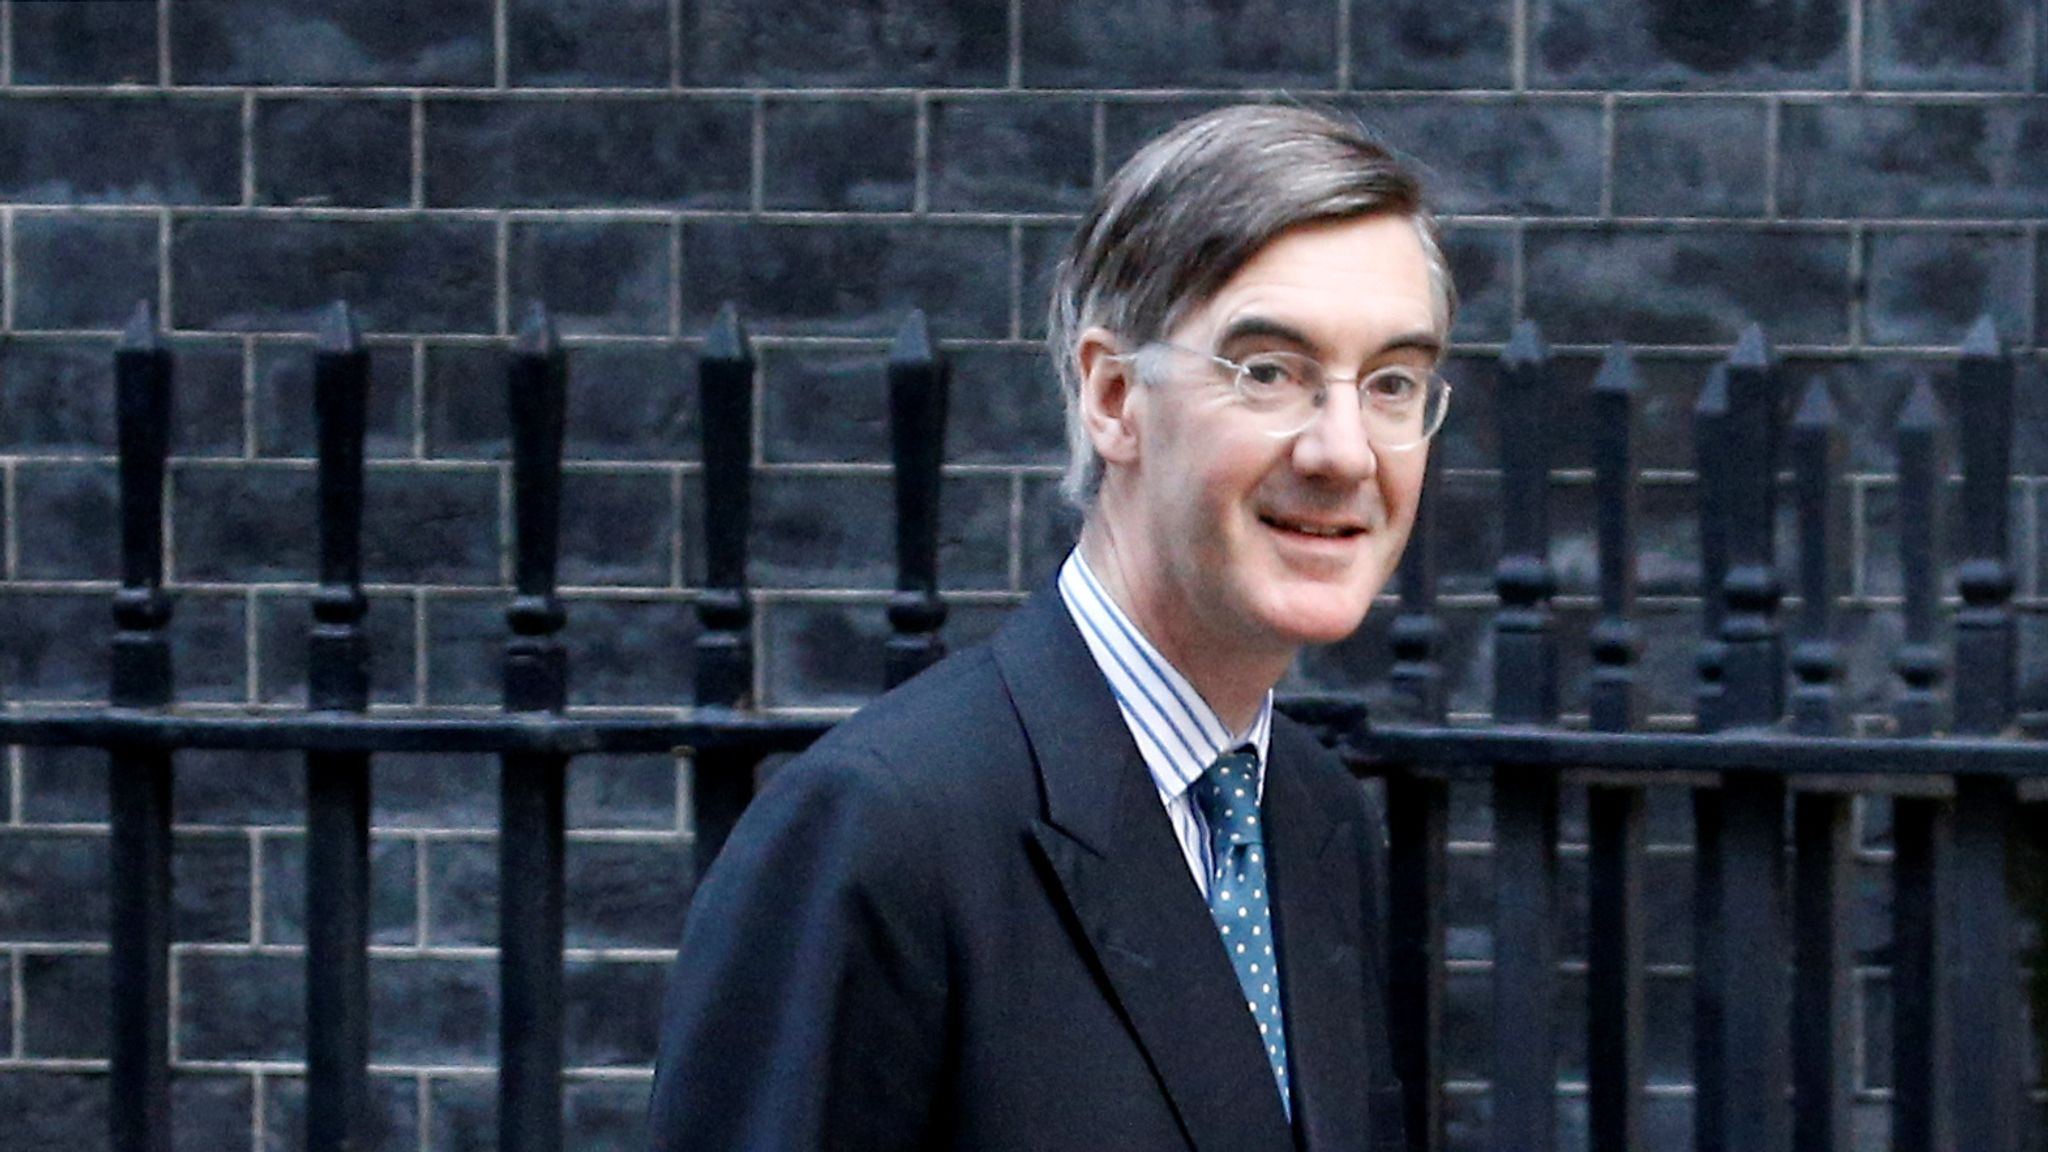 Brexit: EU warns 'a lot of work remains' as Jacob Rees-Mogg hints at compromises